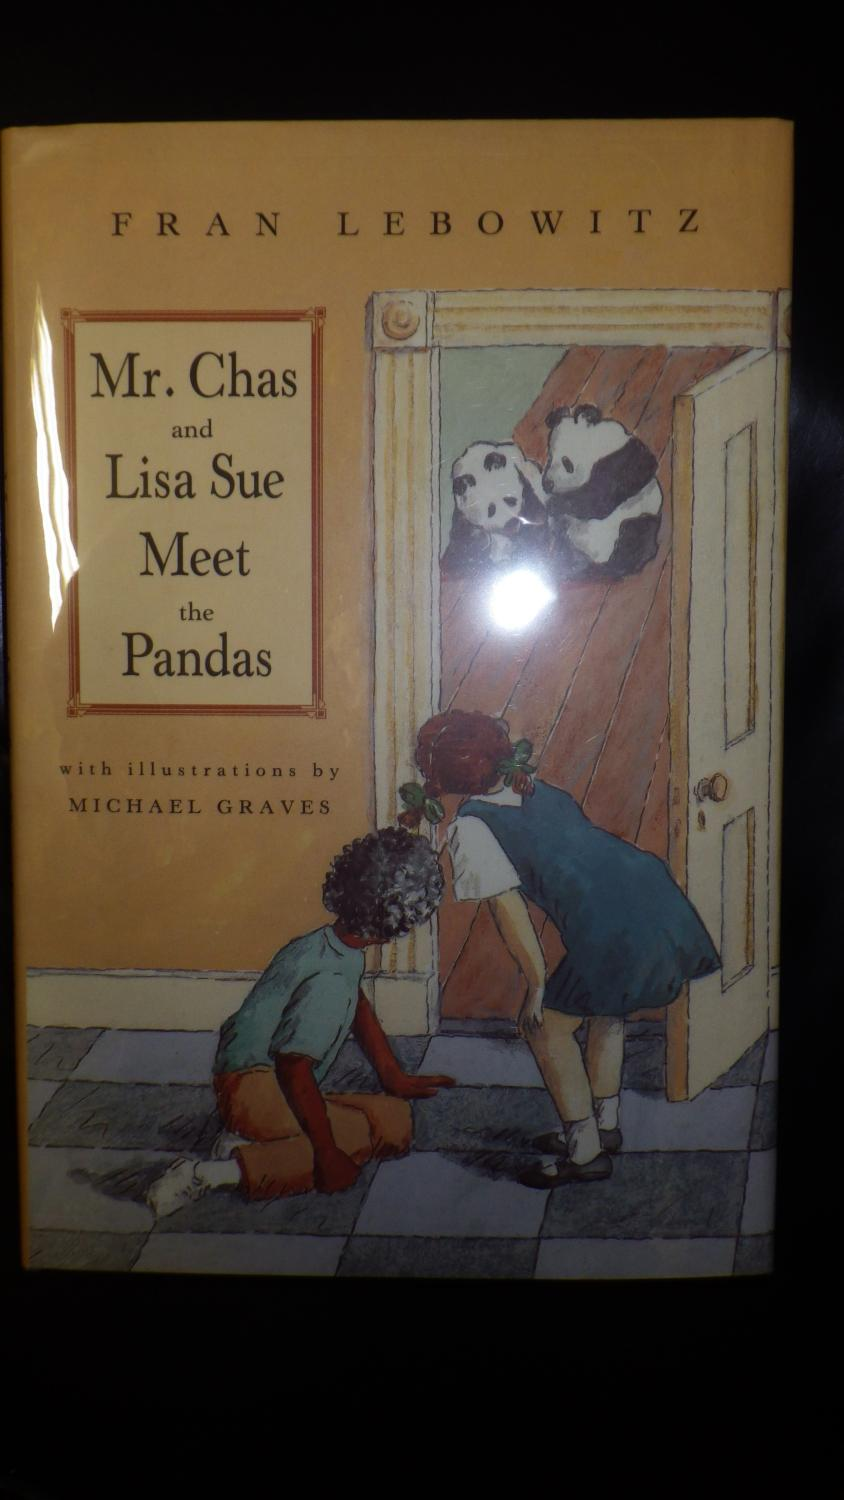 Mr. Chas & Lisa Sue Meet the Pandas, Signed in our presence by Fran Lebowitz , Lebowitz's first (and only) children's book and what a delight it is! While exploring their New York City apartment building, - Fran Lebowitz, B/W illustrated by Michael Graves, SIGNED in our presence by Fran Lebowitz on the title page. Inner DJ Flap has Original Price Intact $15